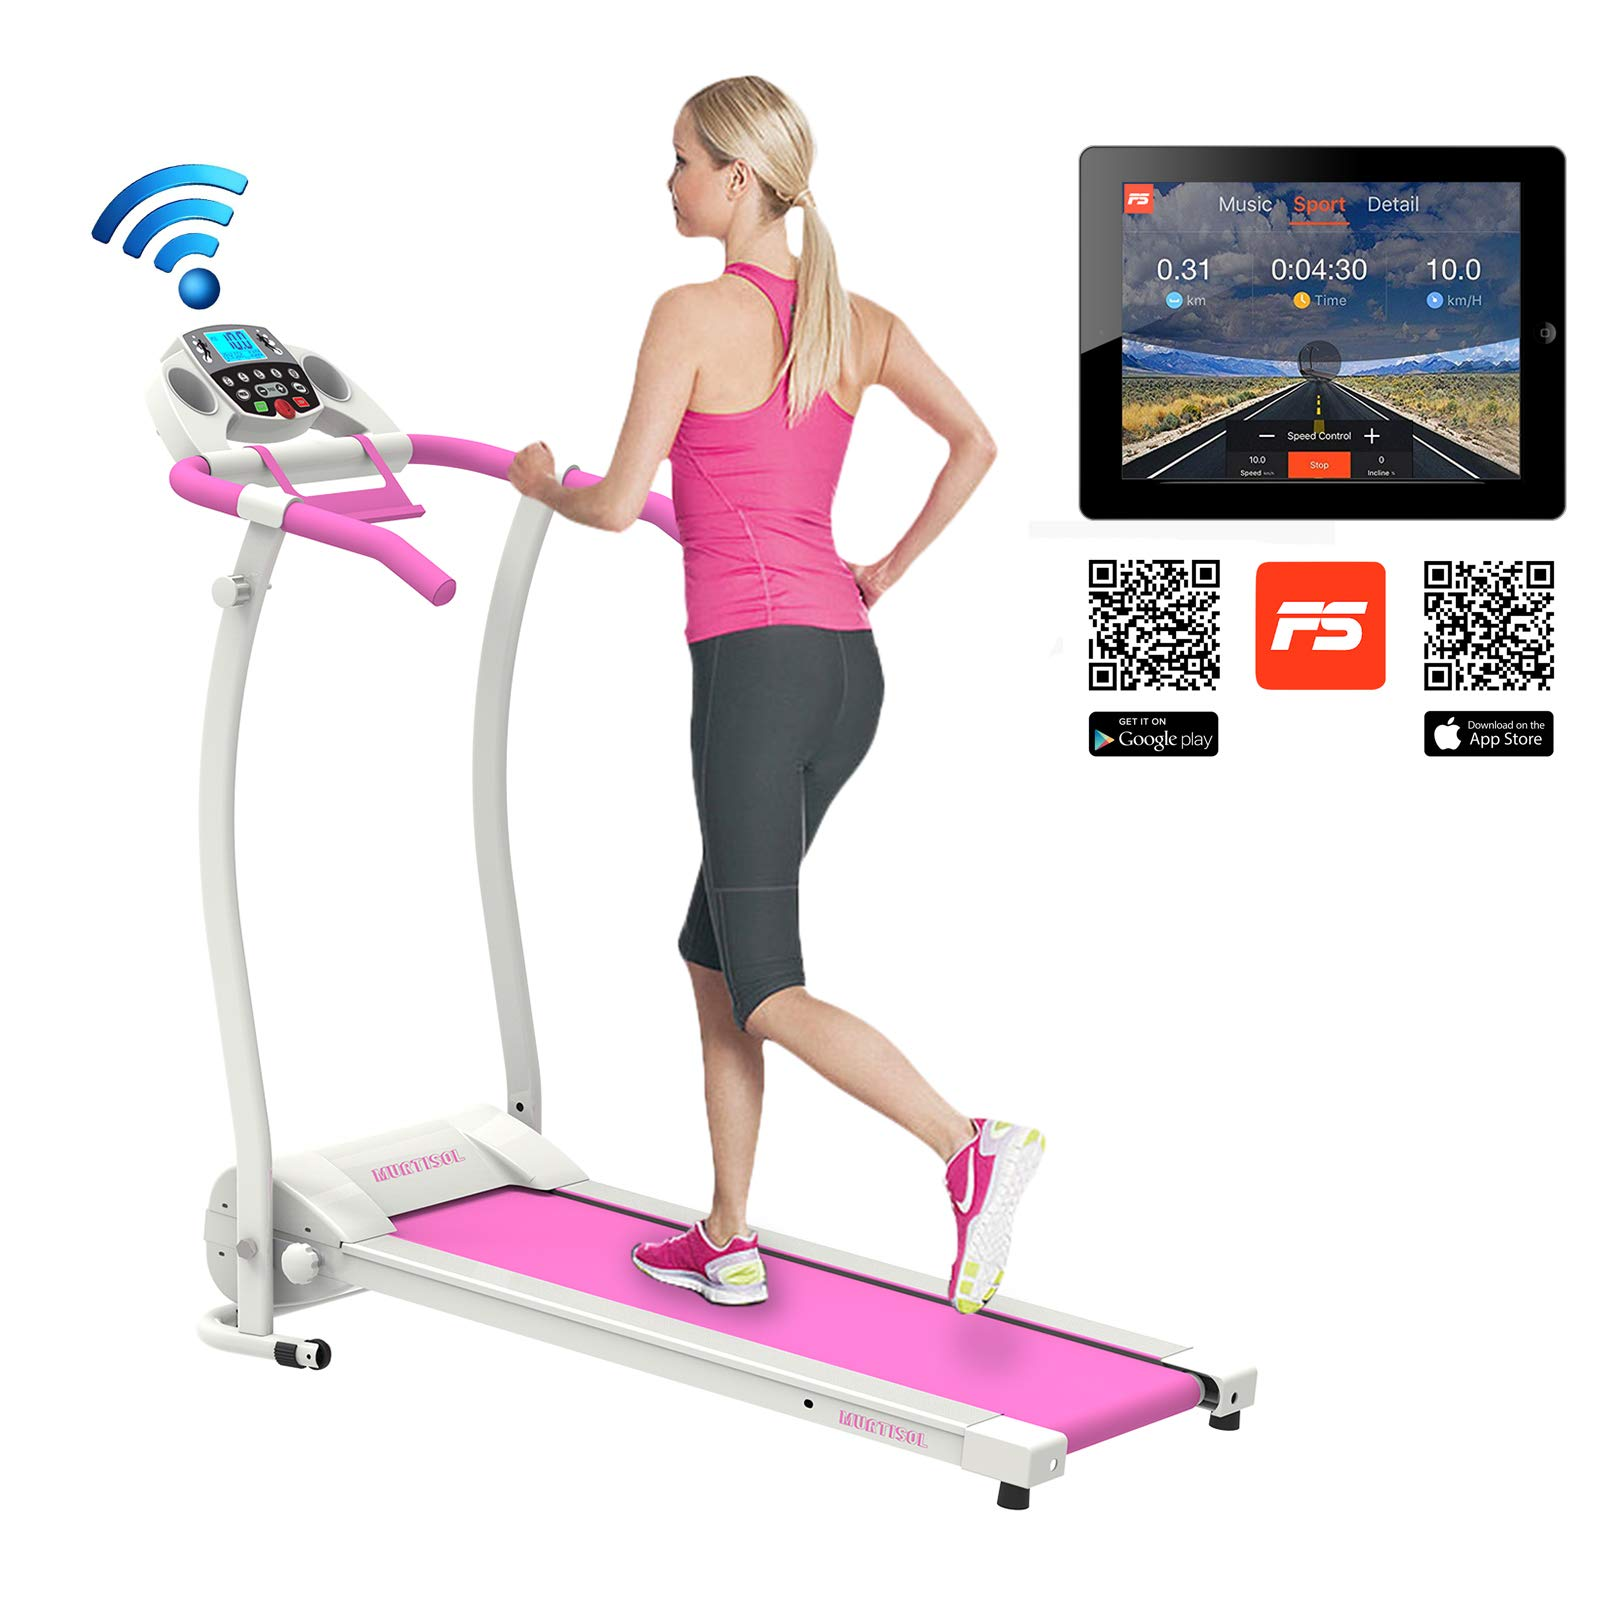 Murtisol 1.5HP Folding Treadmill Electric Walking Running Exercise Machine with Smart Phone APP,Easy Control Home Fitness Trainer Equipment,Pink